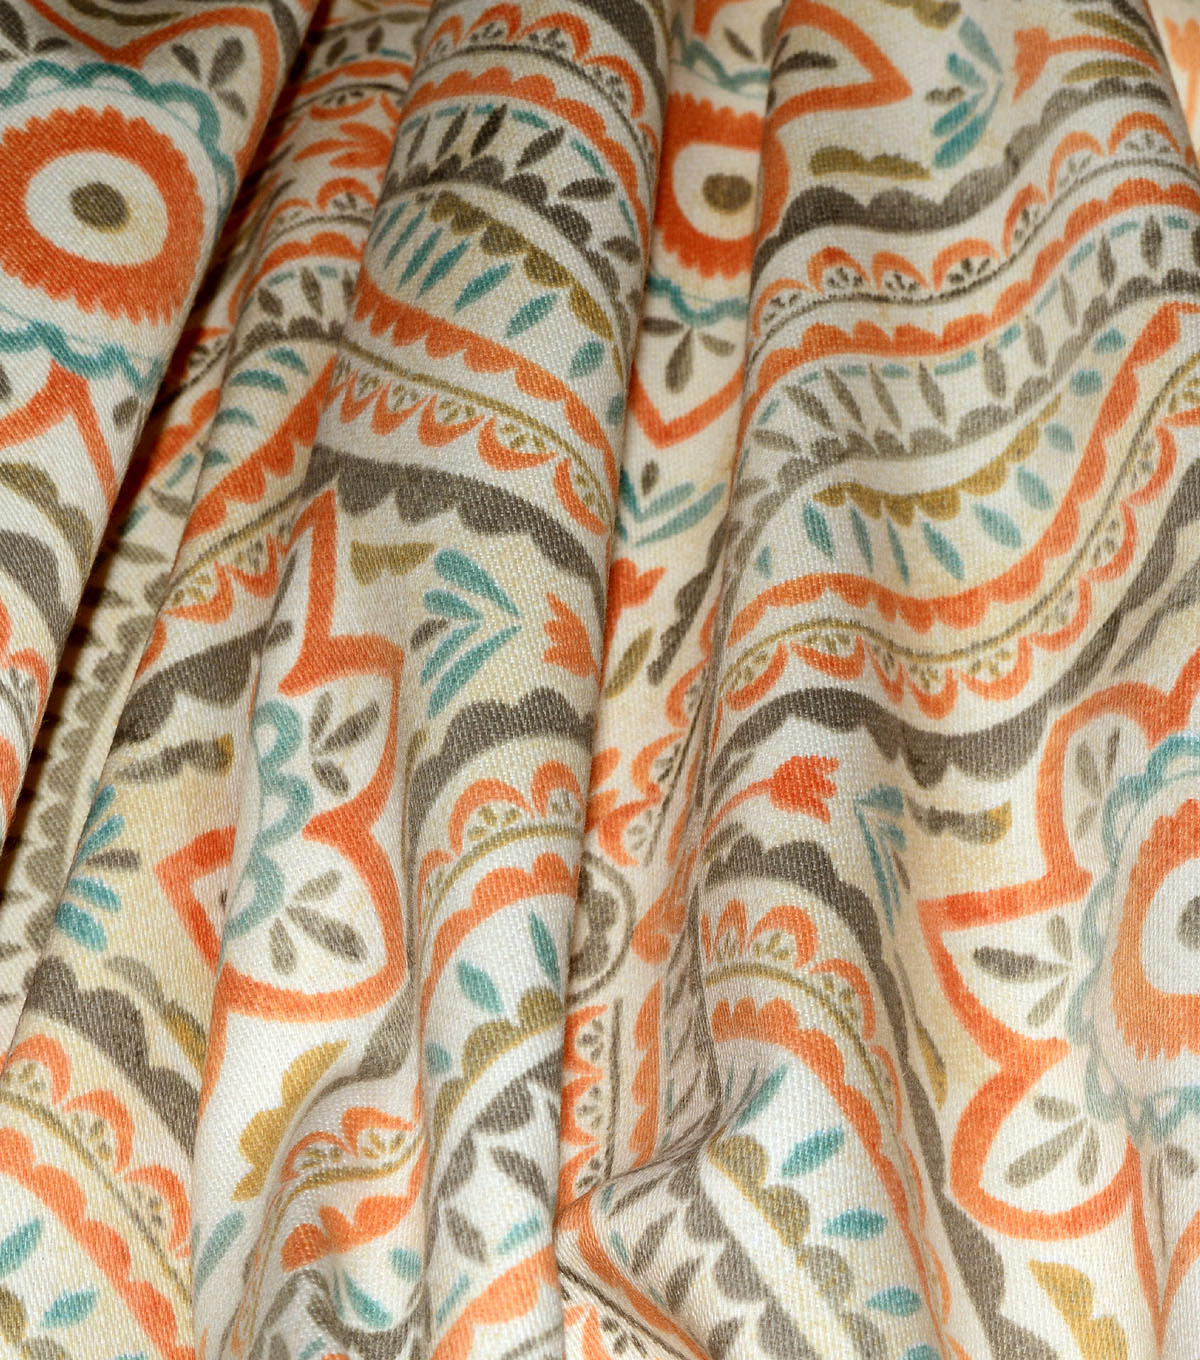 Kelly Ripa Home Upholstery Fabric 54\u0027\u0027-Nectar Blissfulness